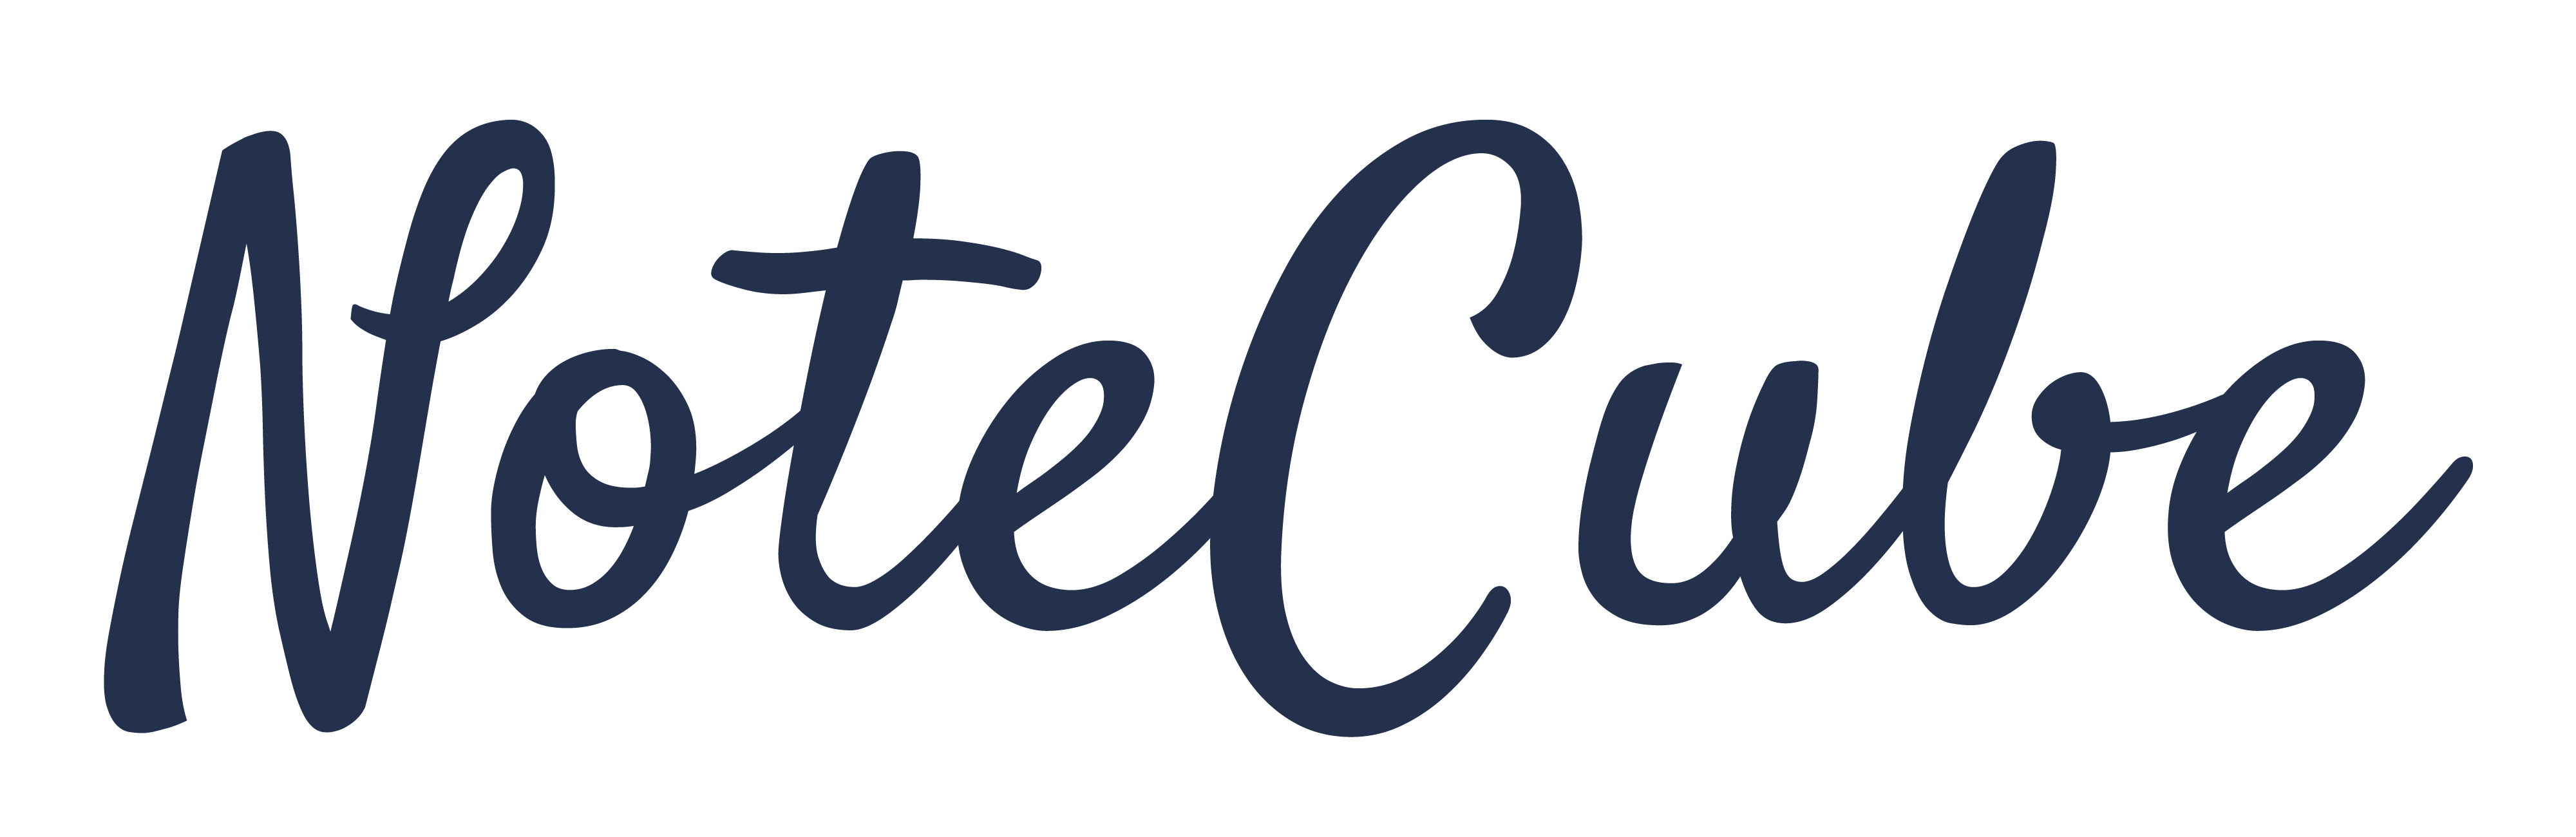 The Note Cube logo